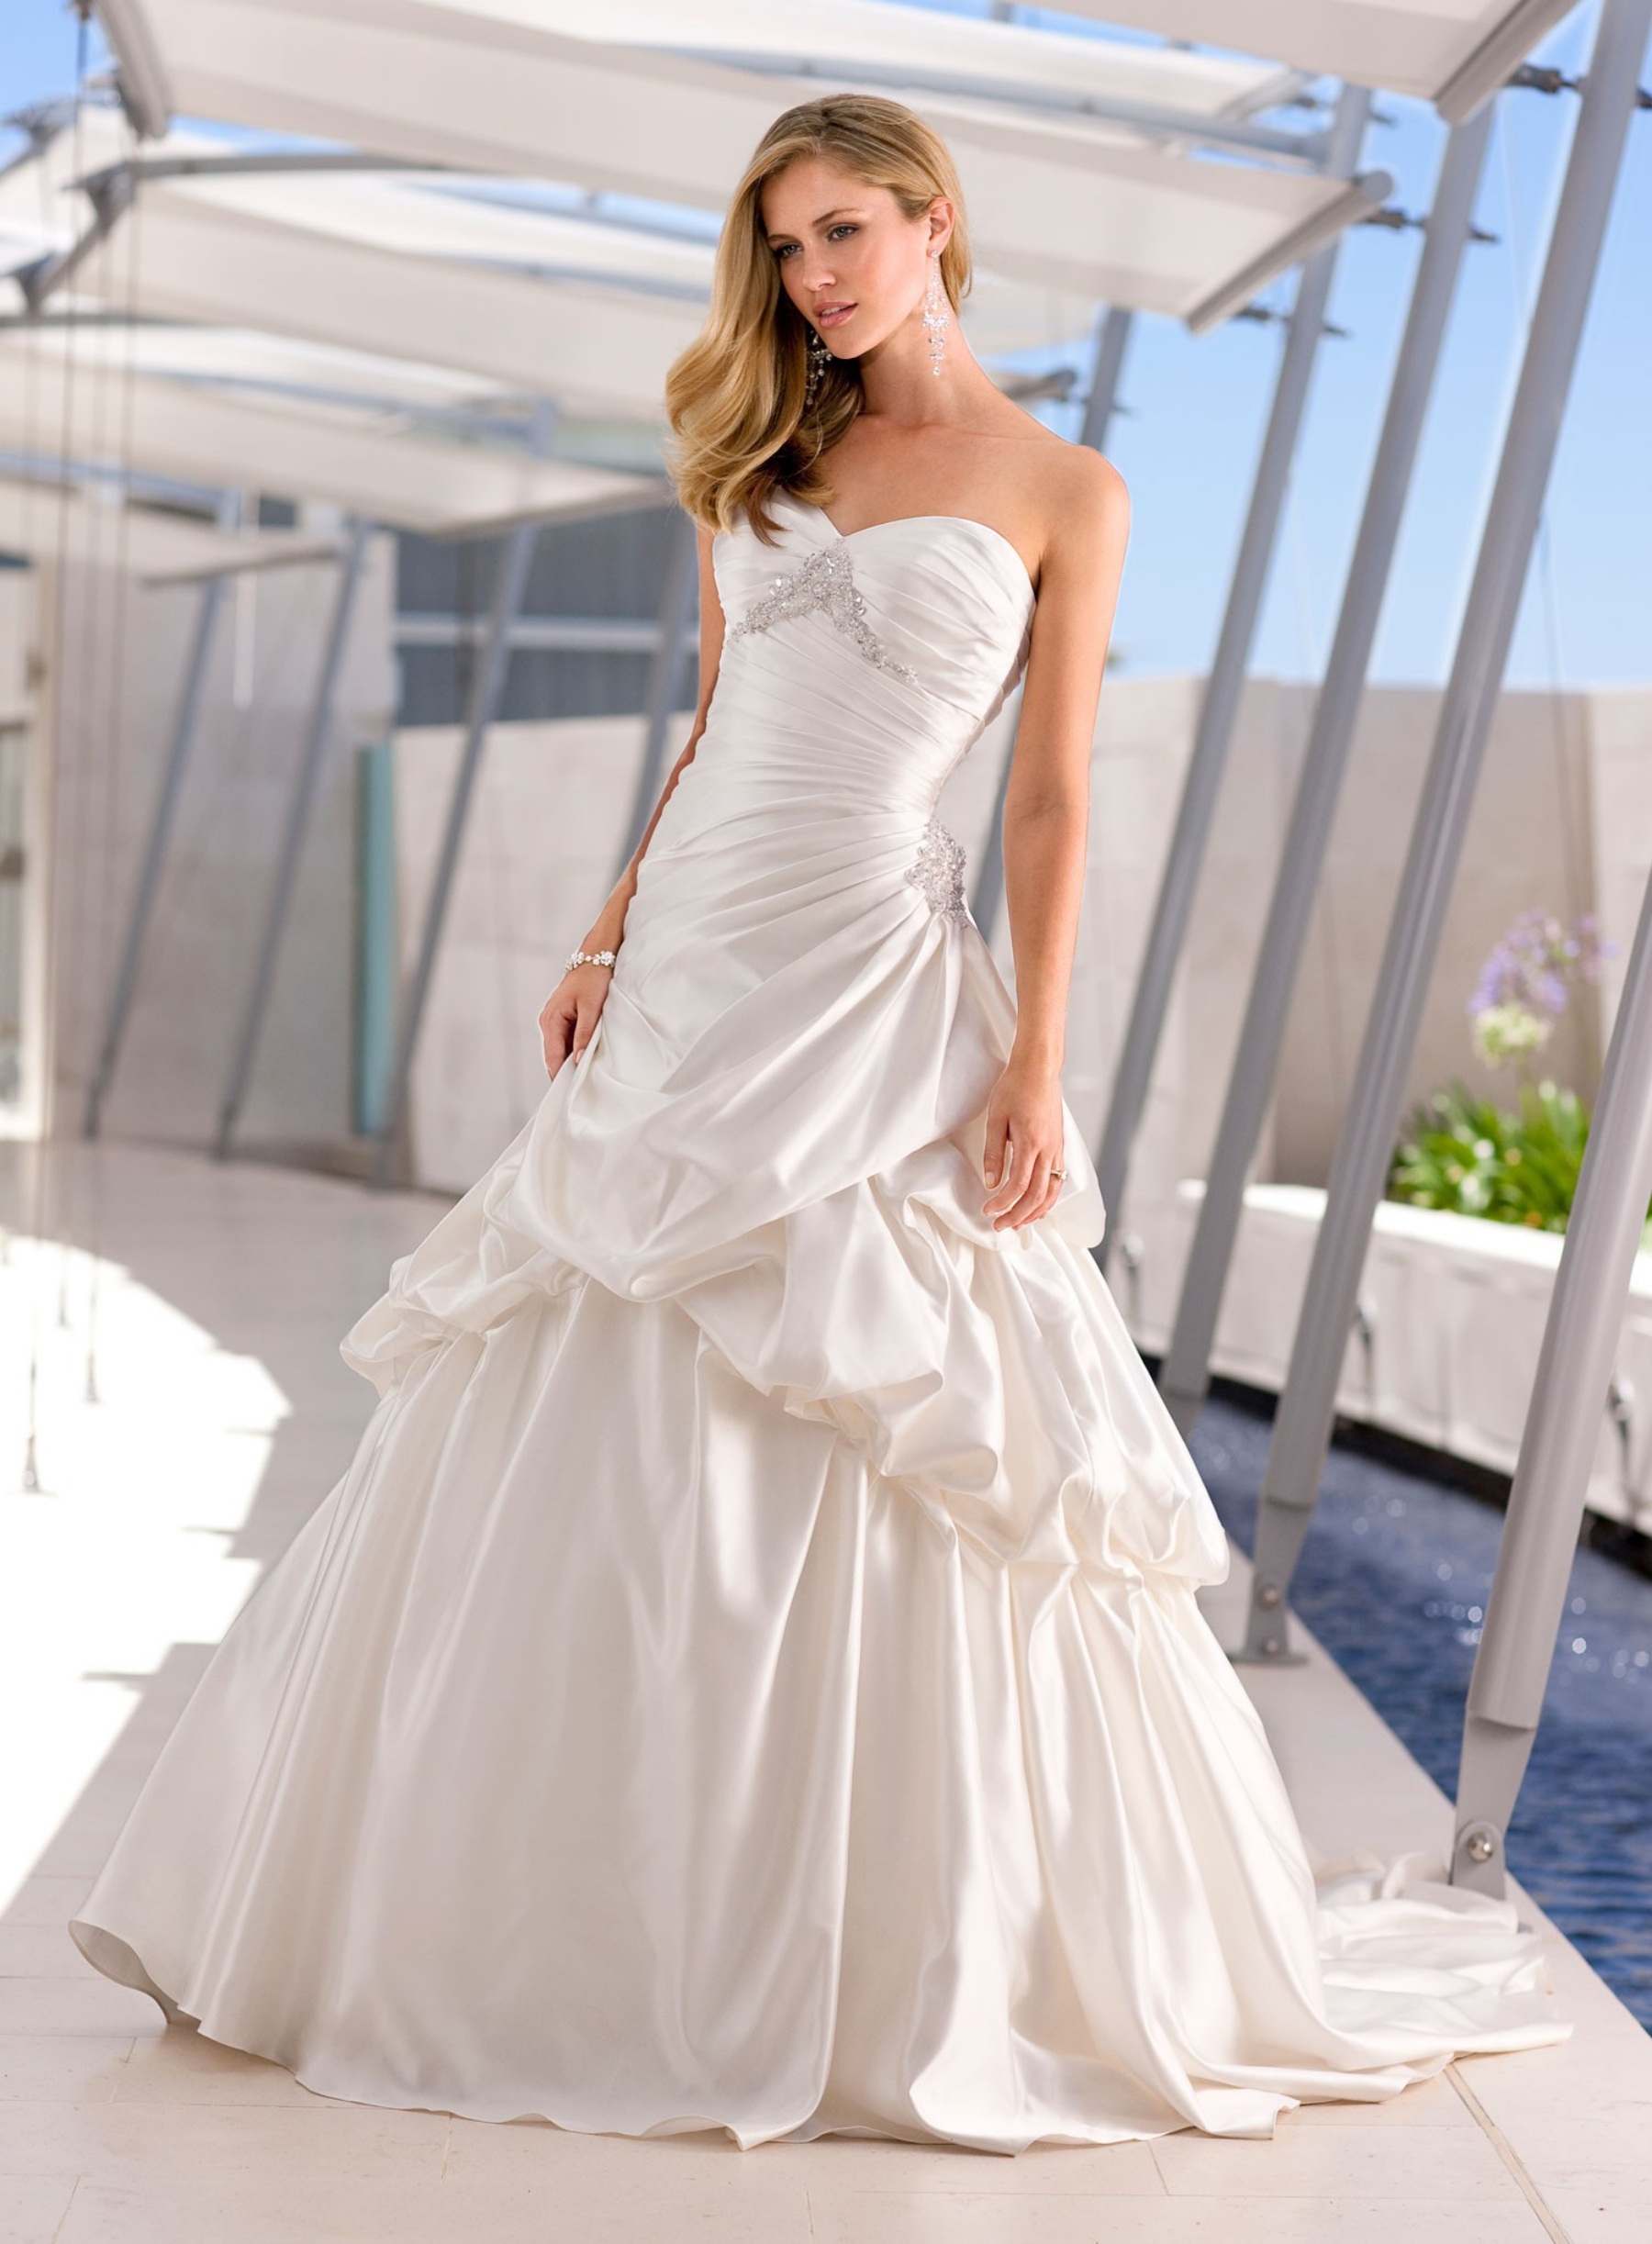 14 cheap wedding dresses under 100 for 100 dollar wedding dresses